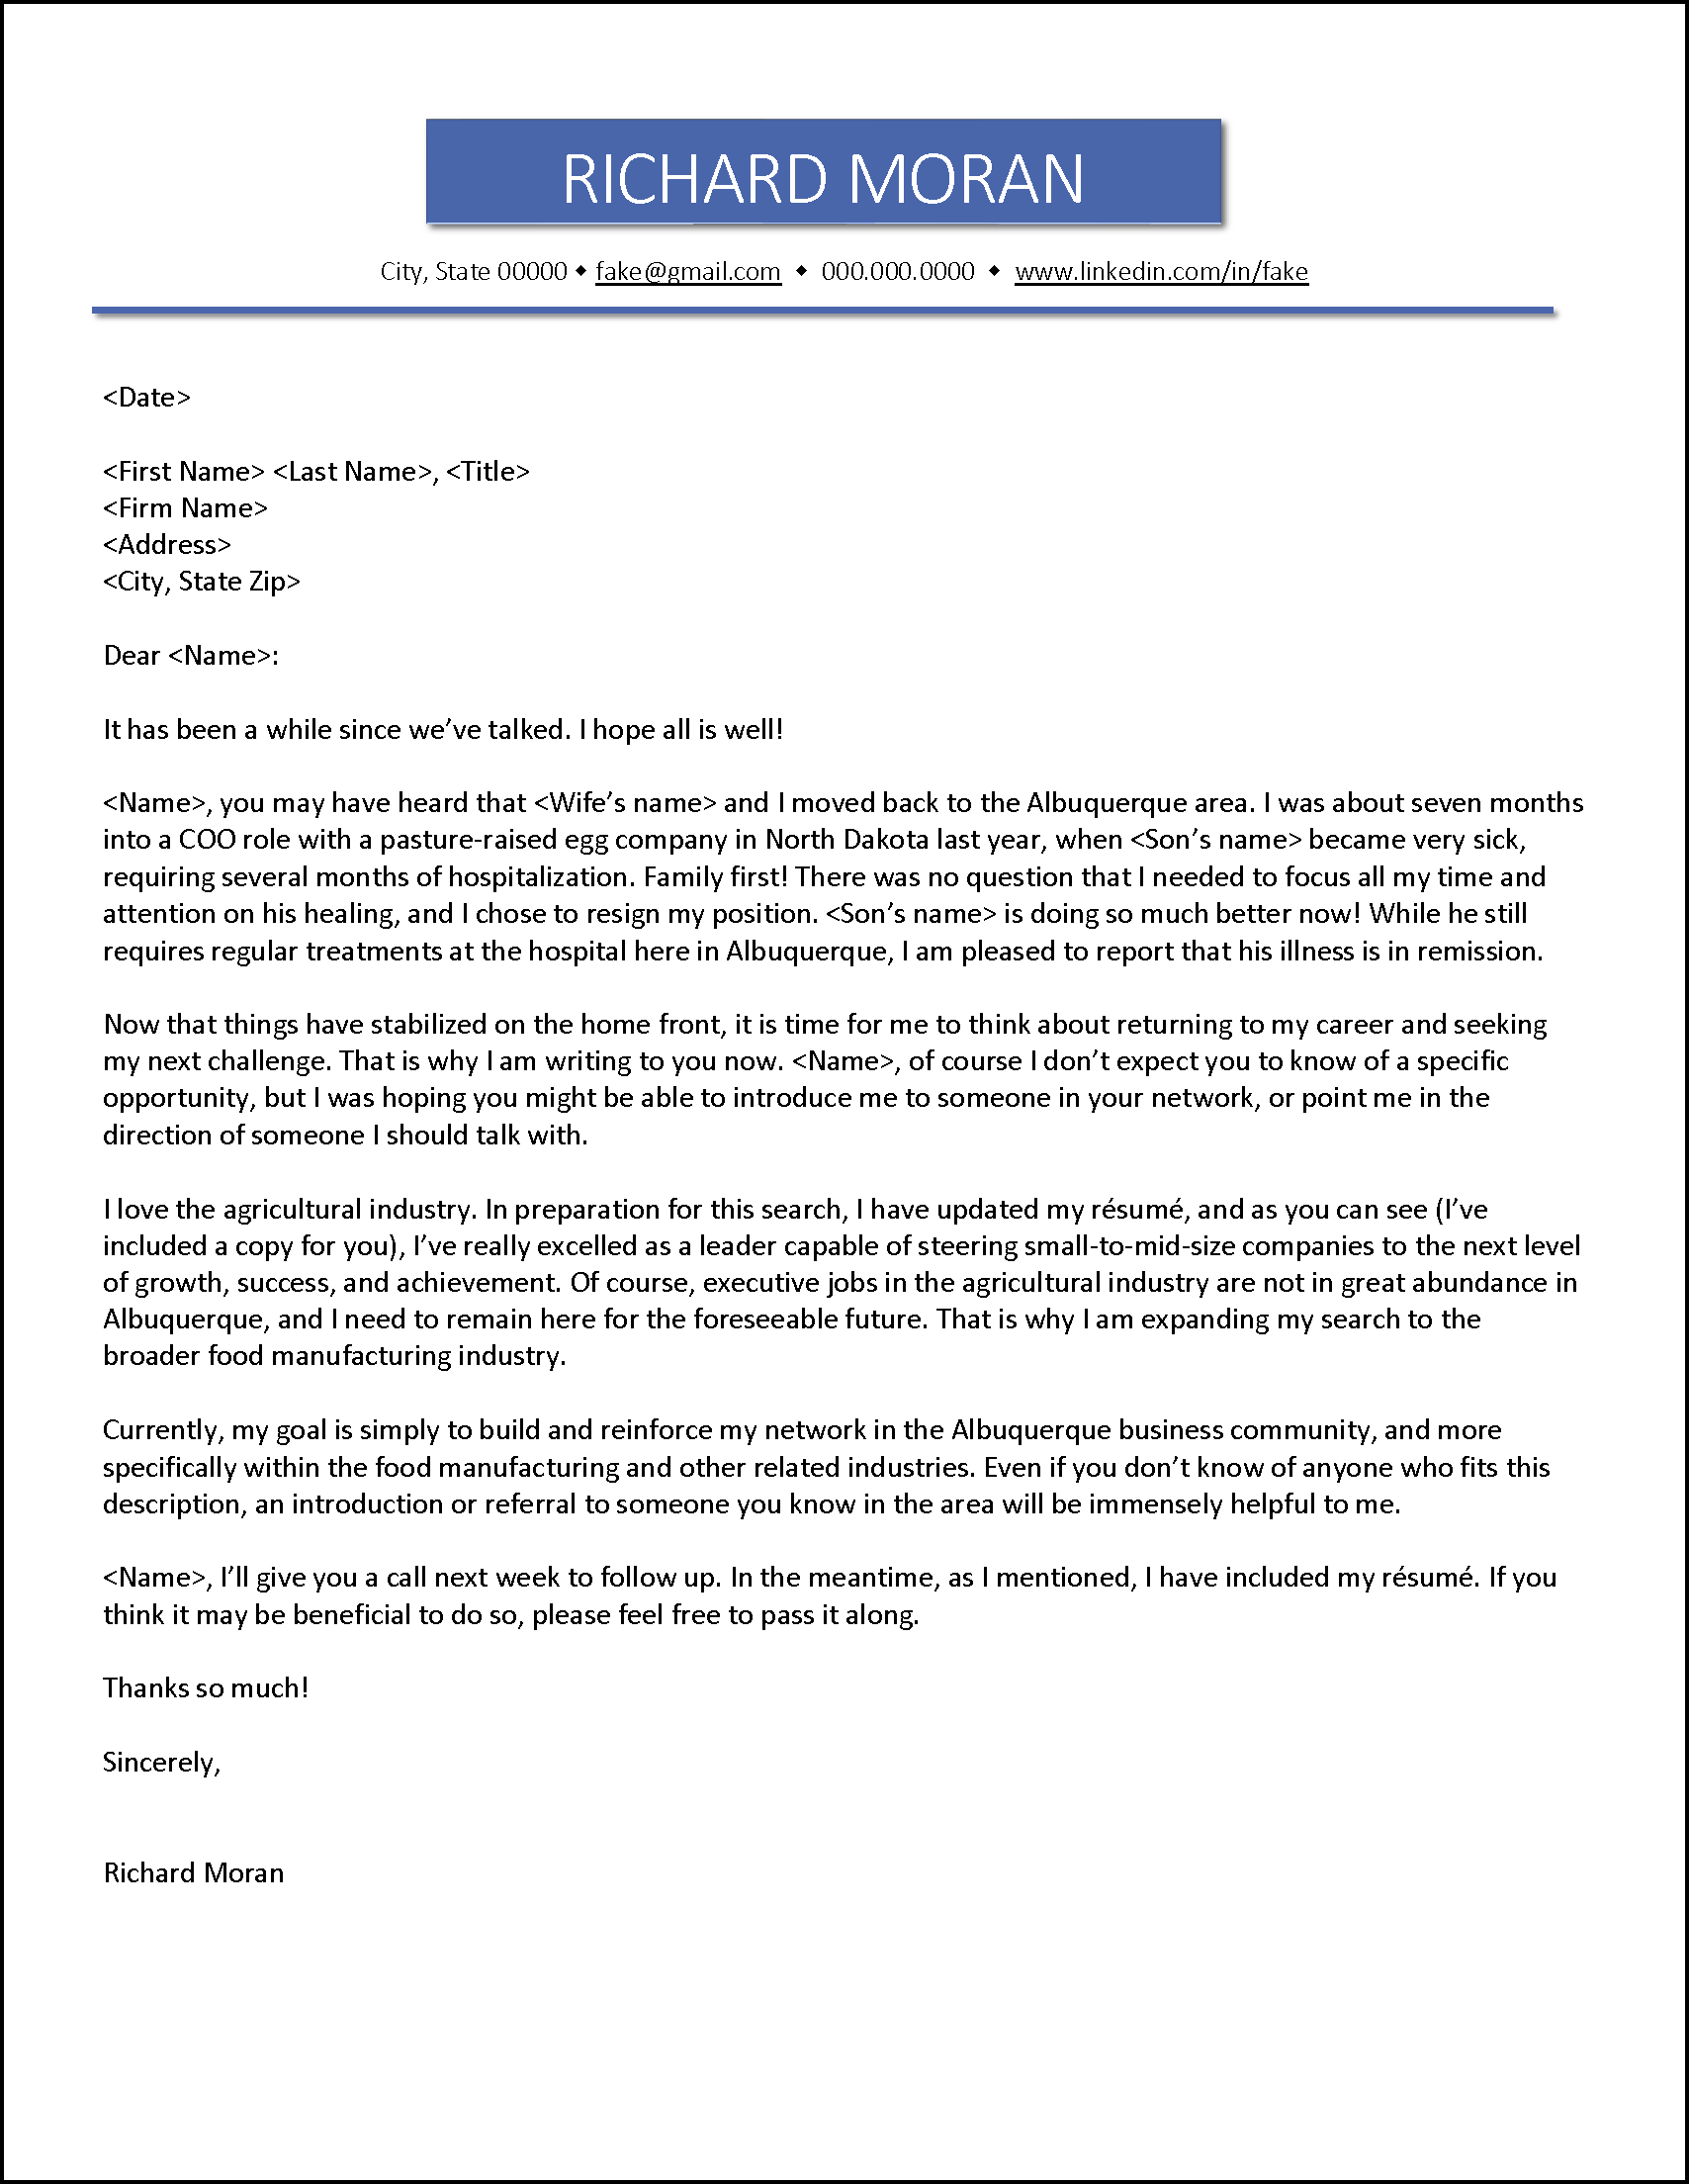 Example Letter for People in Your Network